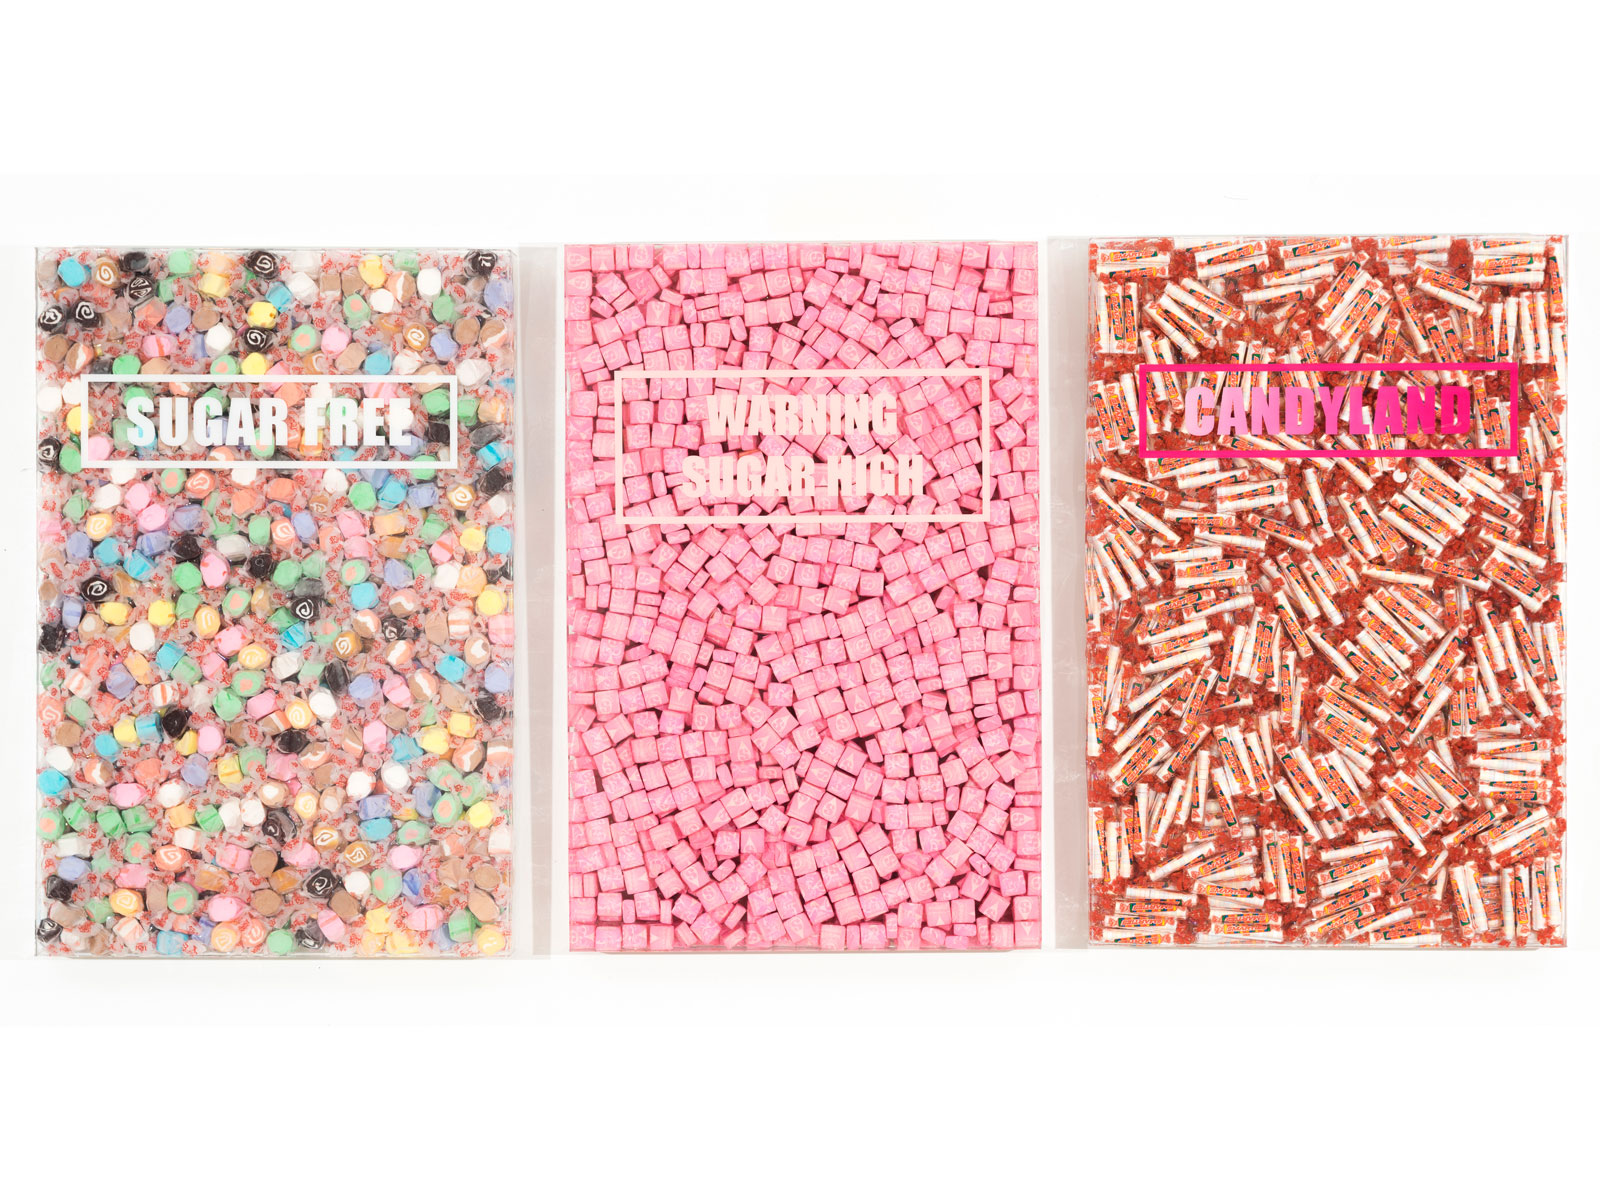 This Artist Turns Your Favorite Candy Into Art